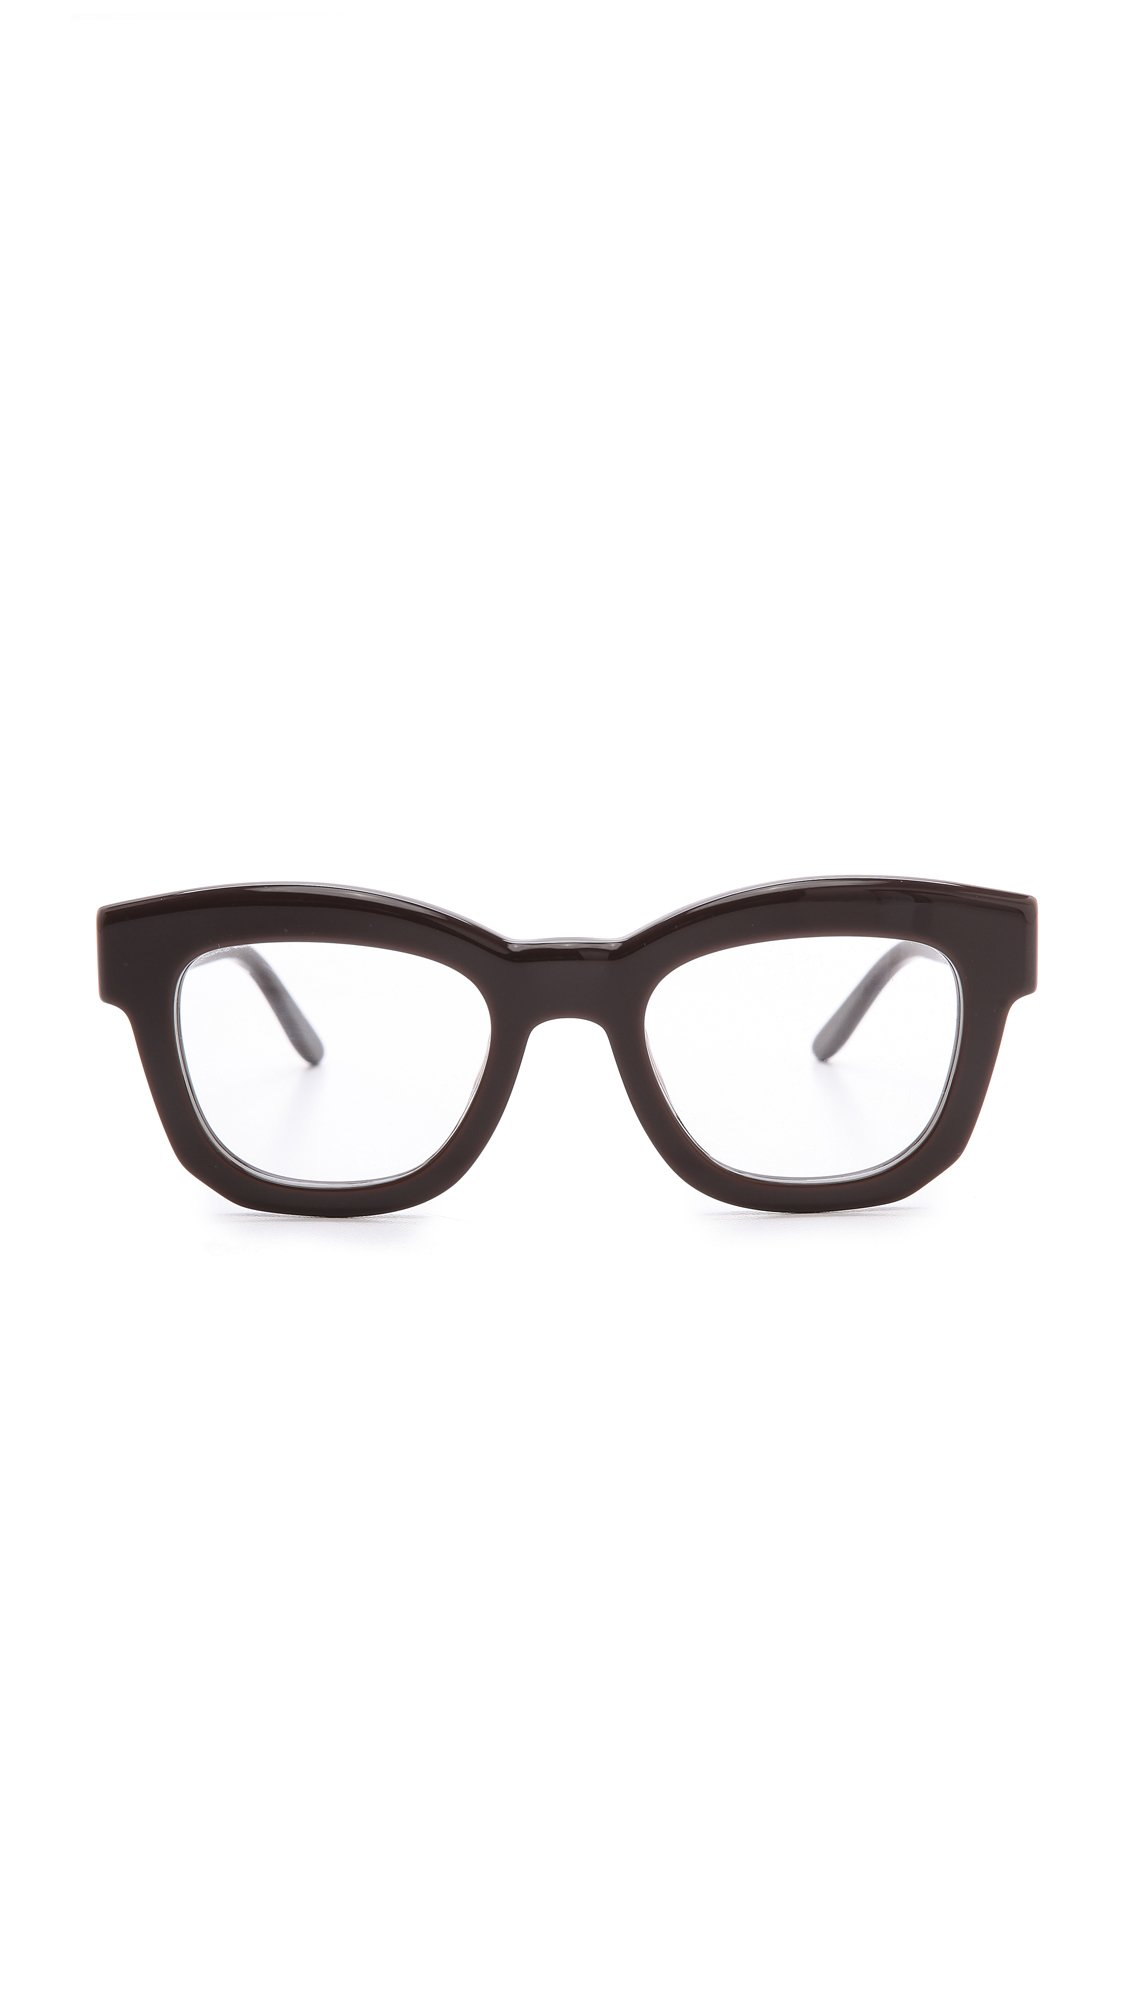 Lyst - Stella Mccartney Thick Frame Glasses - Brown in Brown